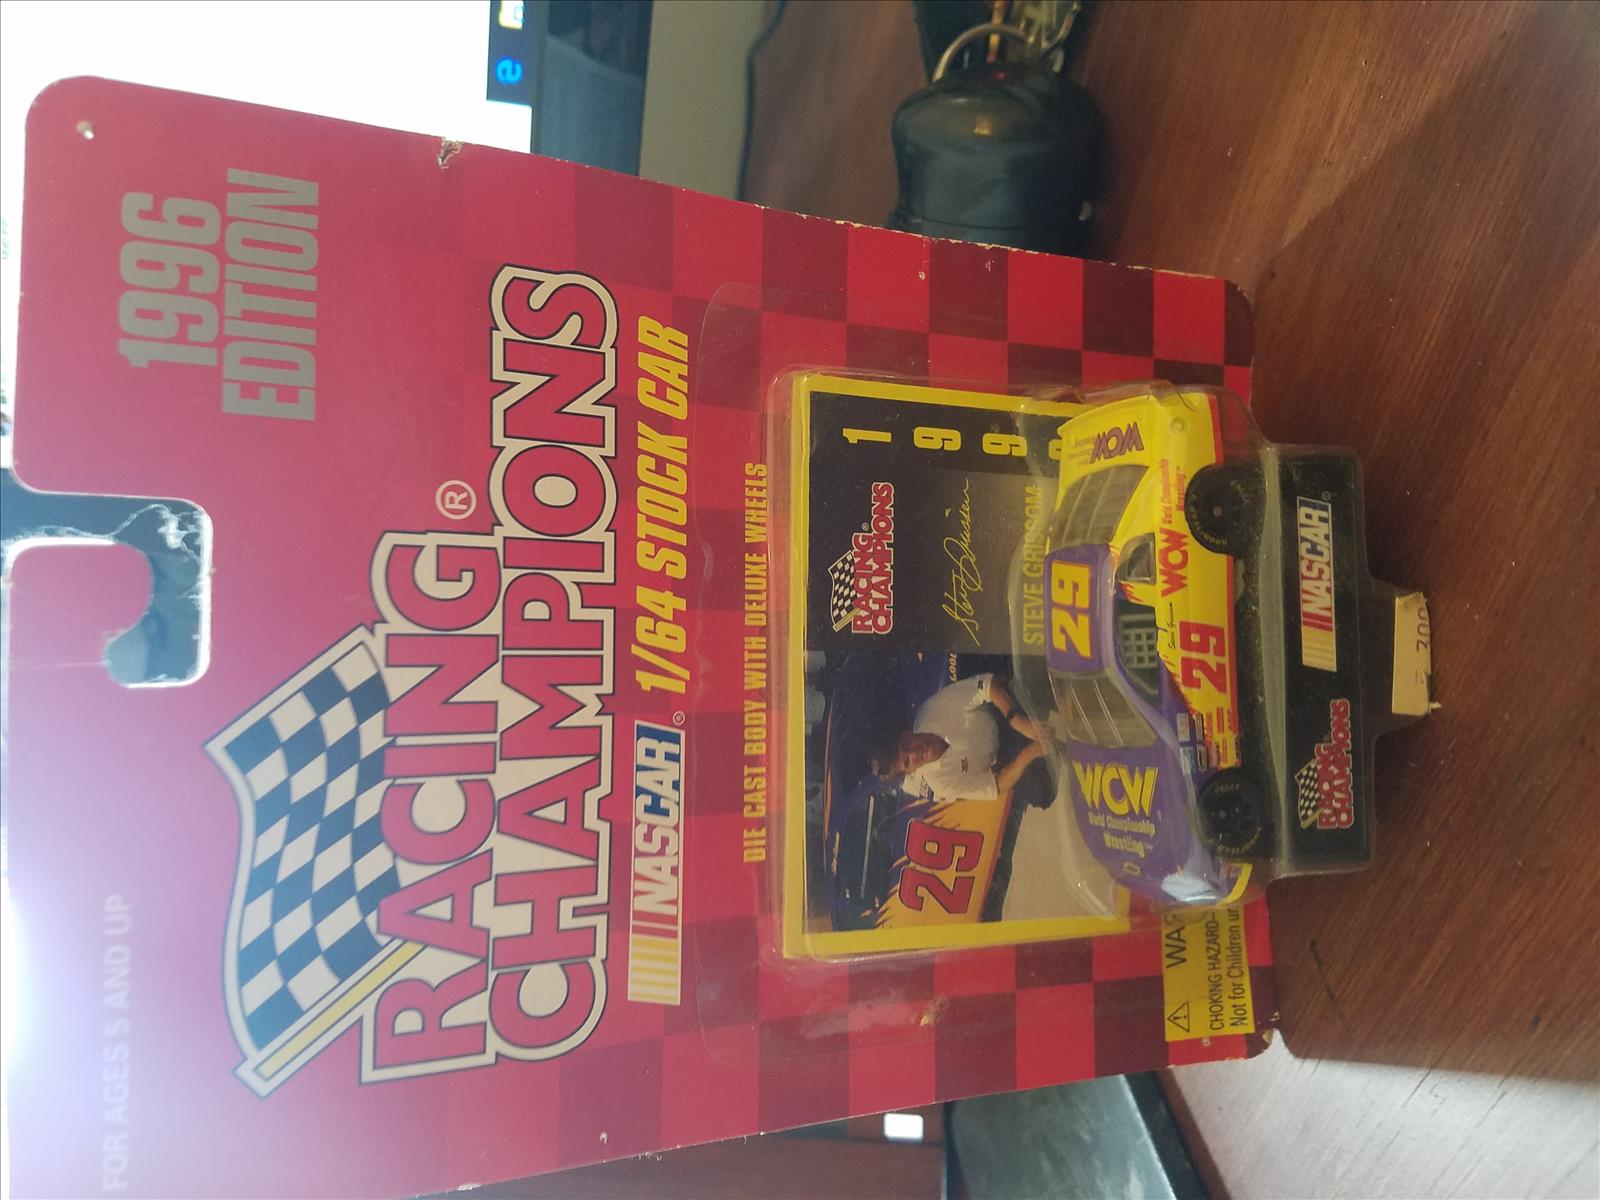 1996 Steve Grissom NASCAR Diecast 29 WCW CWC 1:64 Racing Champions 1996 Edition 1